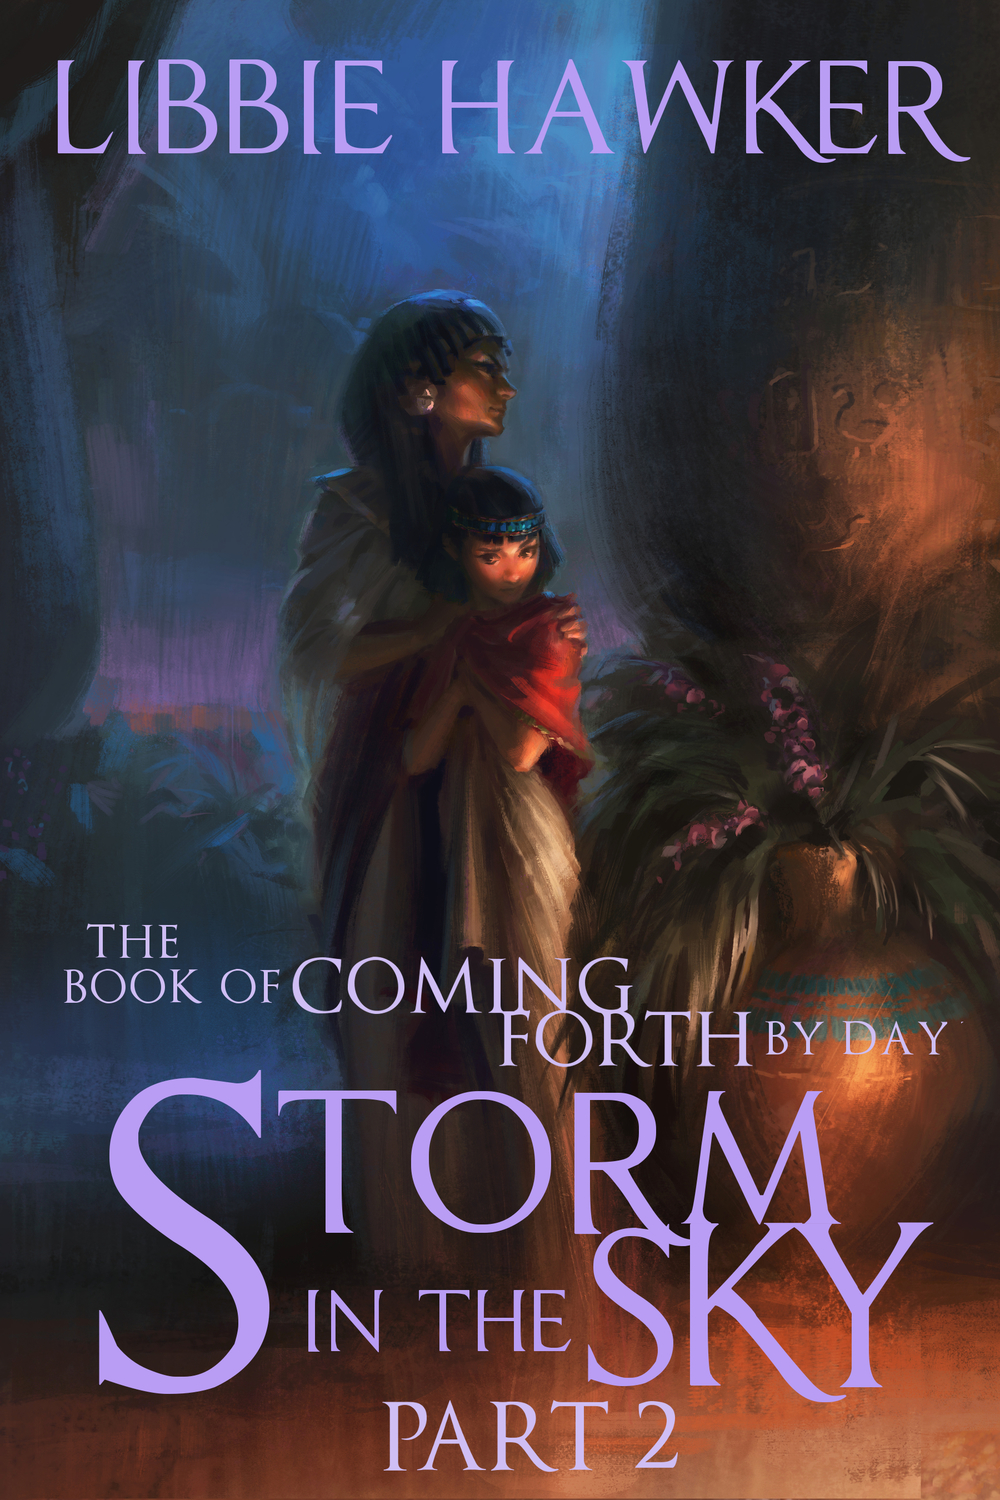 Storm in the Sky,the second installment ofThe Book of Coming Forth by Day, is available now!